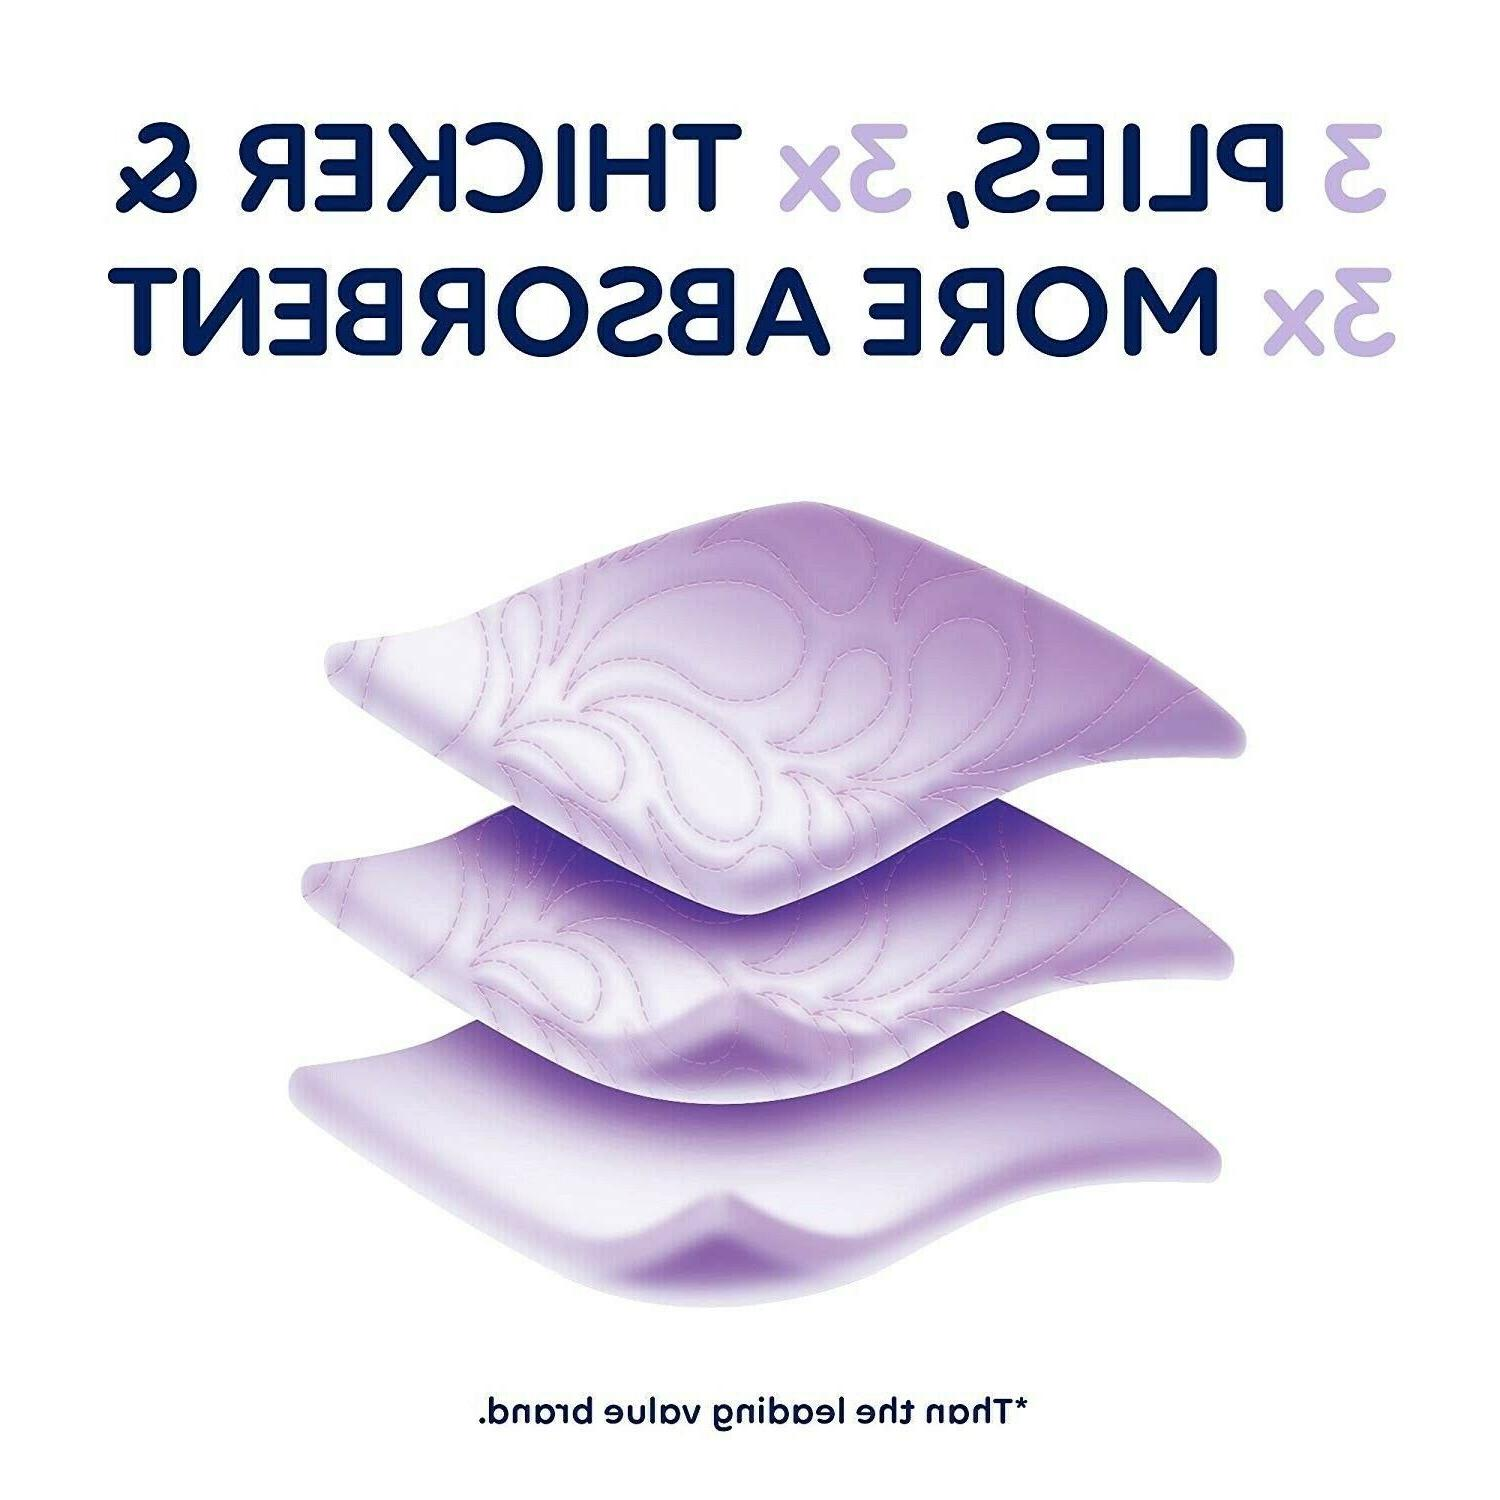 Quilted Plush Bath Tissue 24,48,96 Double Rolls Paper NEW